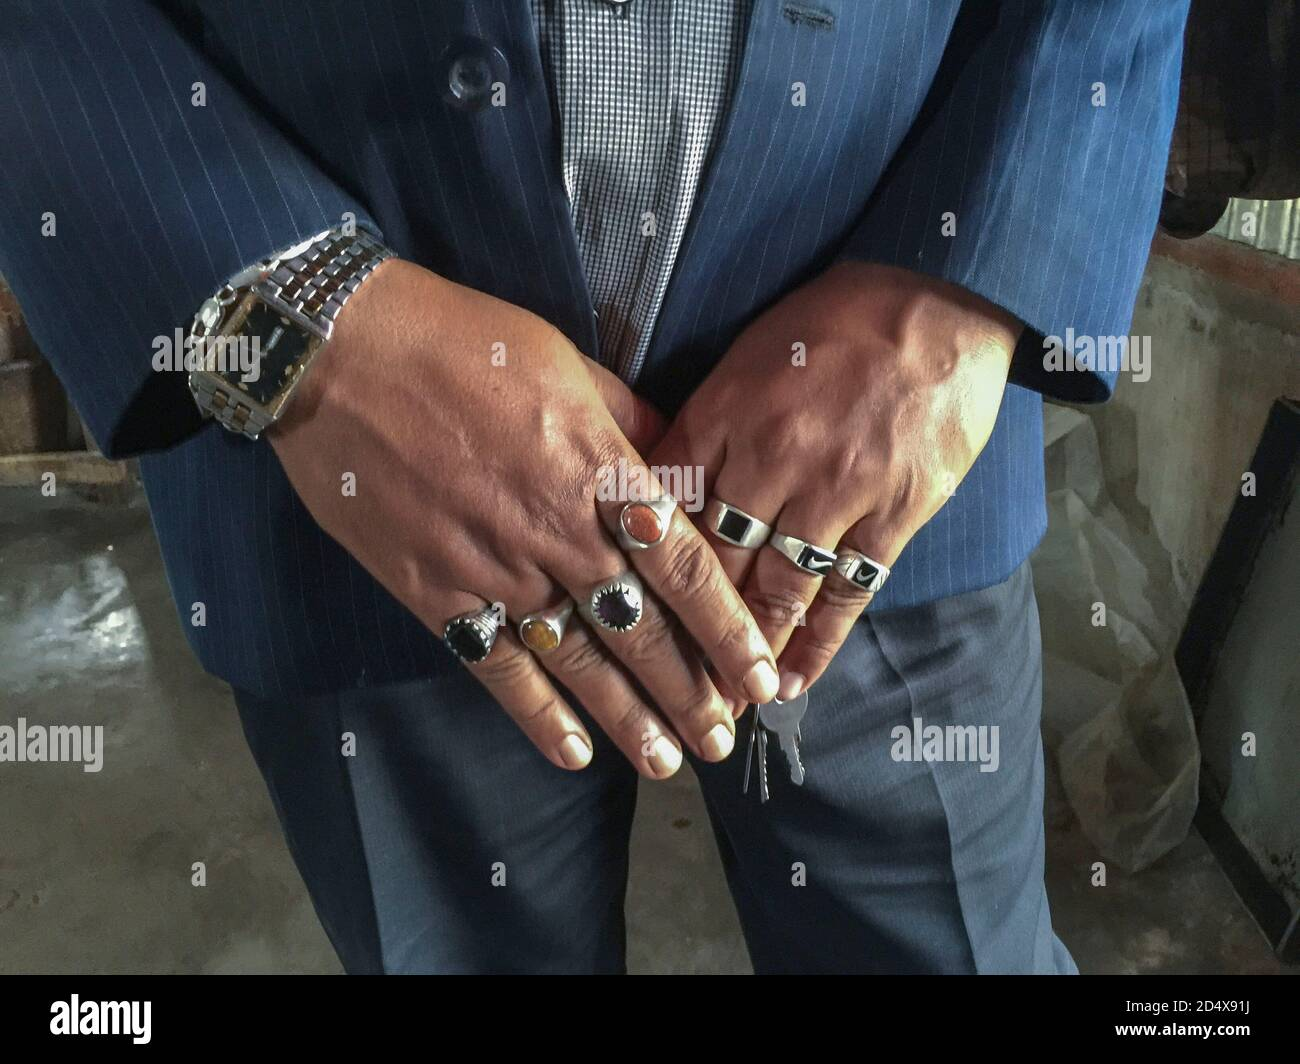 A man wearing rings on all his fingers, who is a Bangladeshi migrant in Malaysia Stock Photo - Alamy